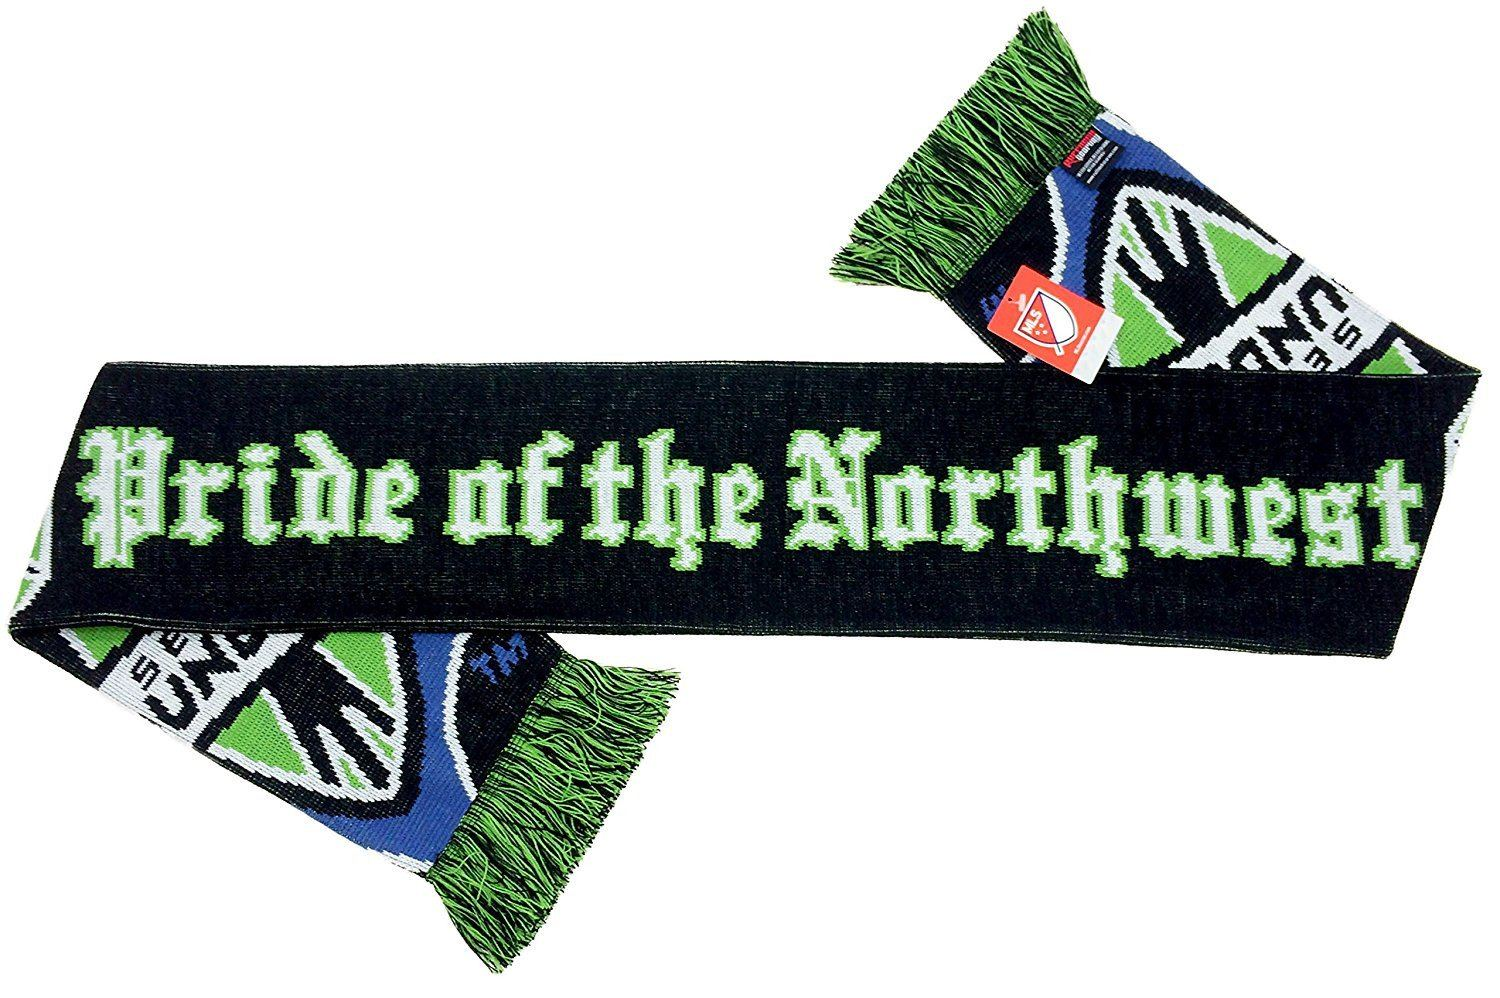 SEATTLE SOUNDERS SCARF - Pride of the Northwest